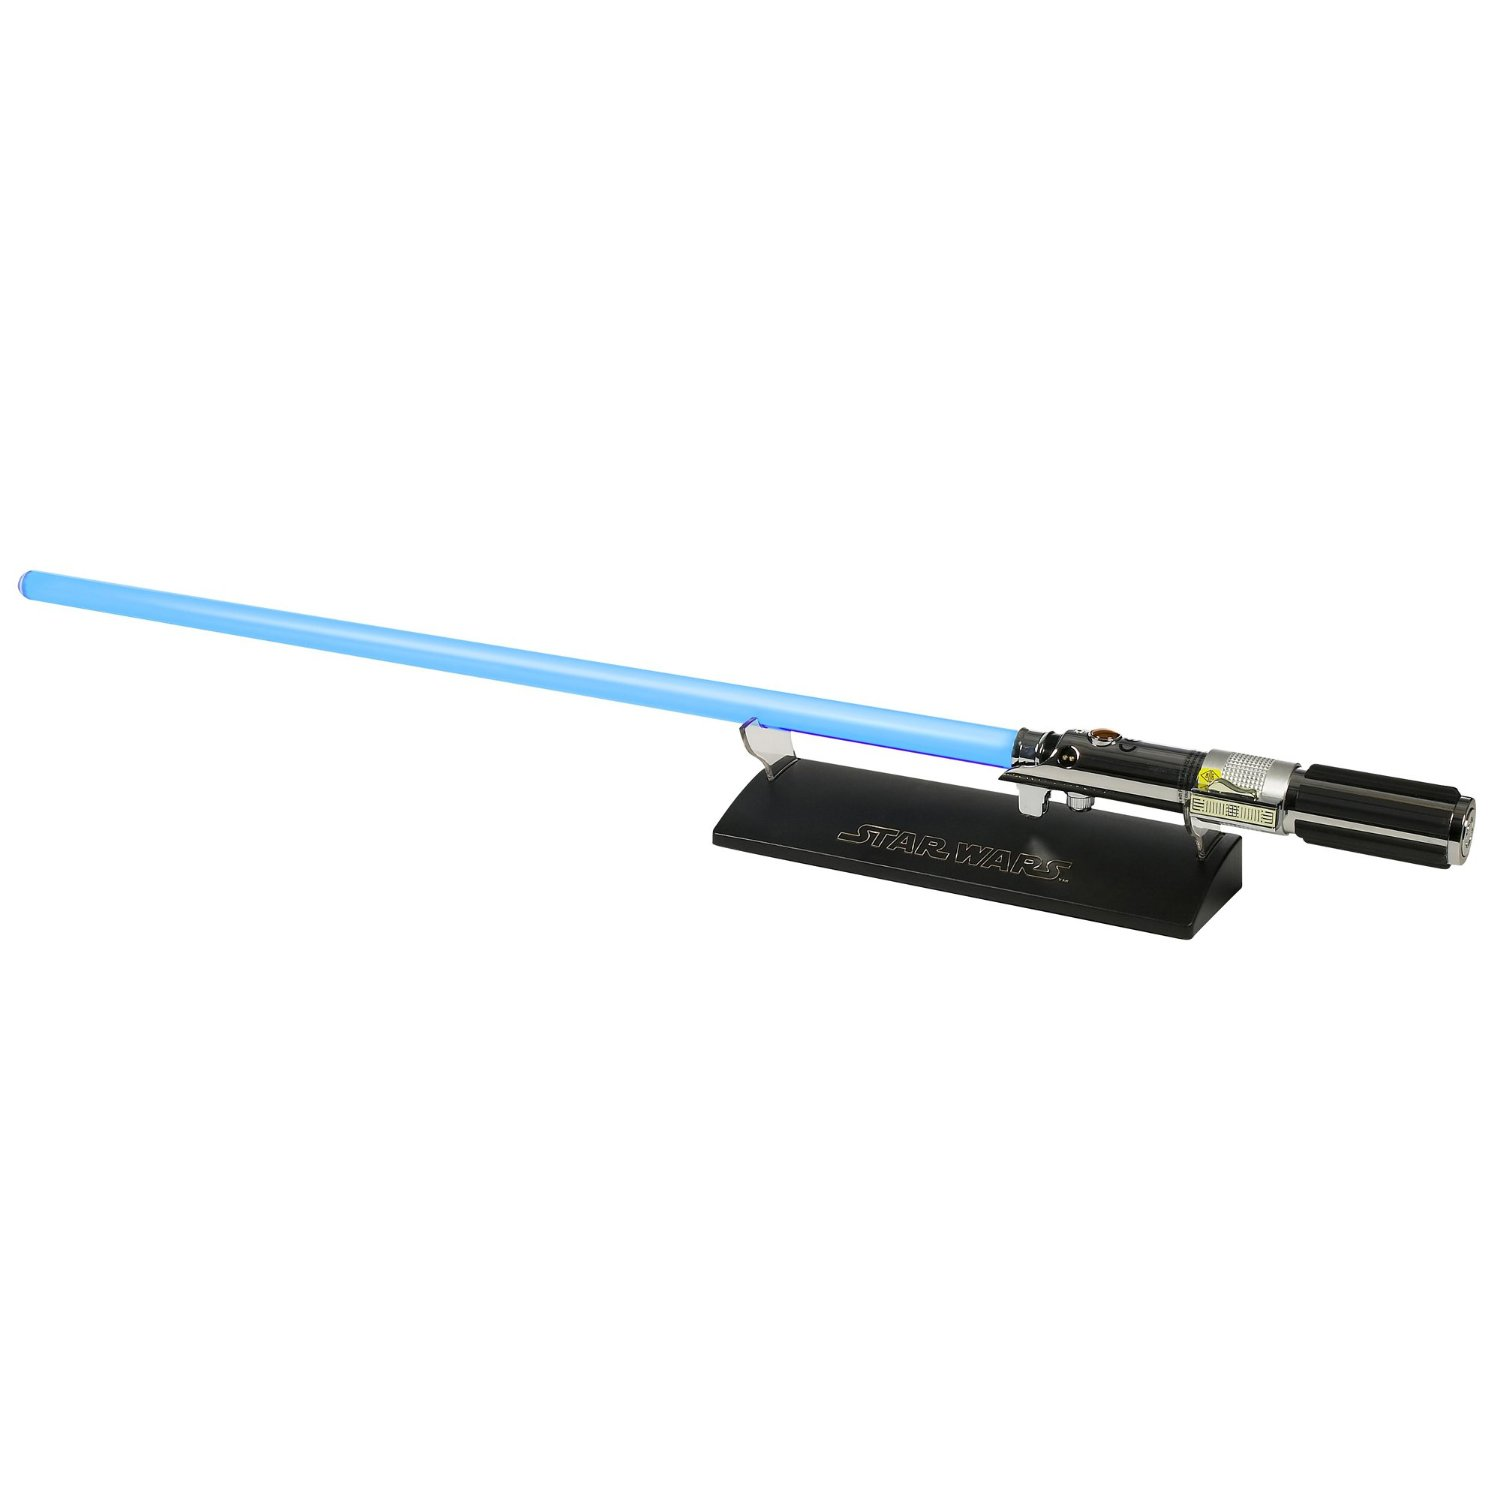 Star Wars Lightsabers Toys : Star wars toys anakin skywalker™ ultimate fx lightsaber